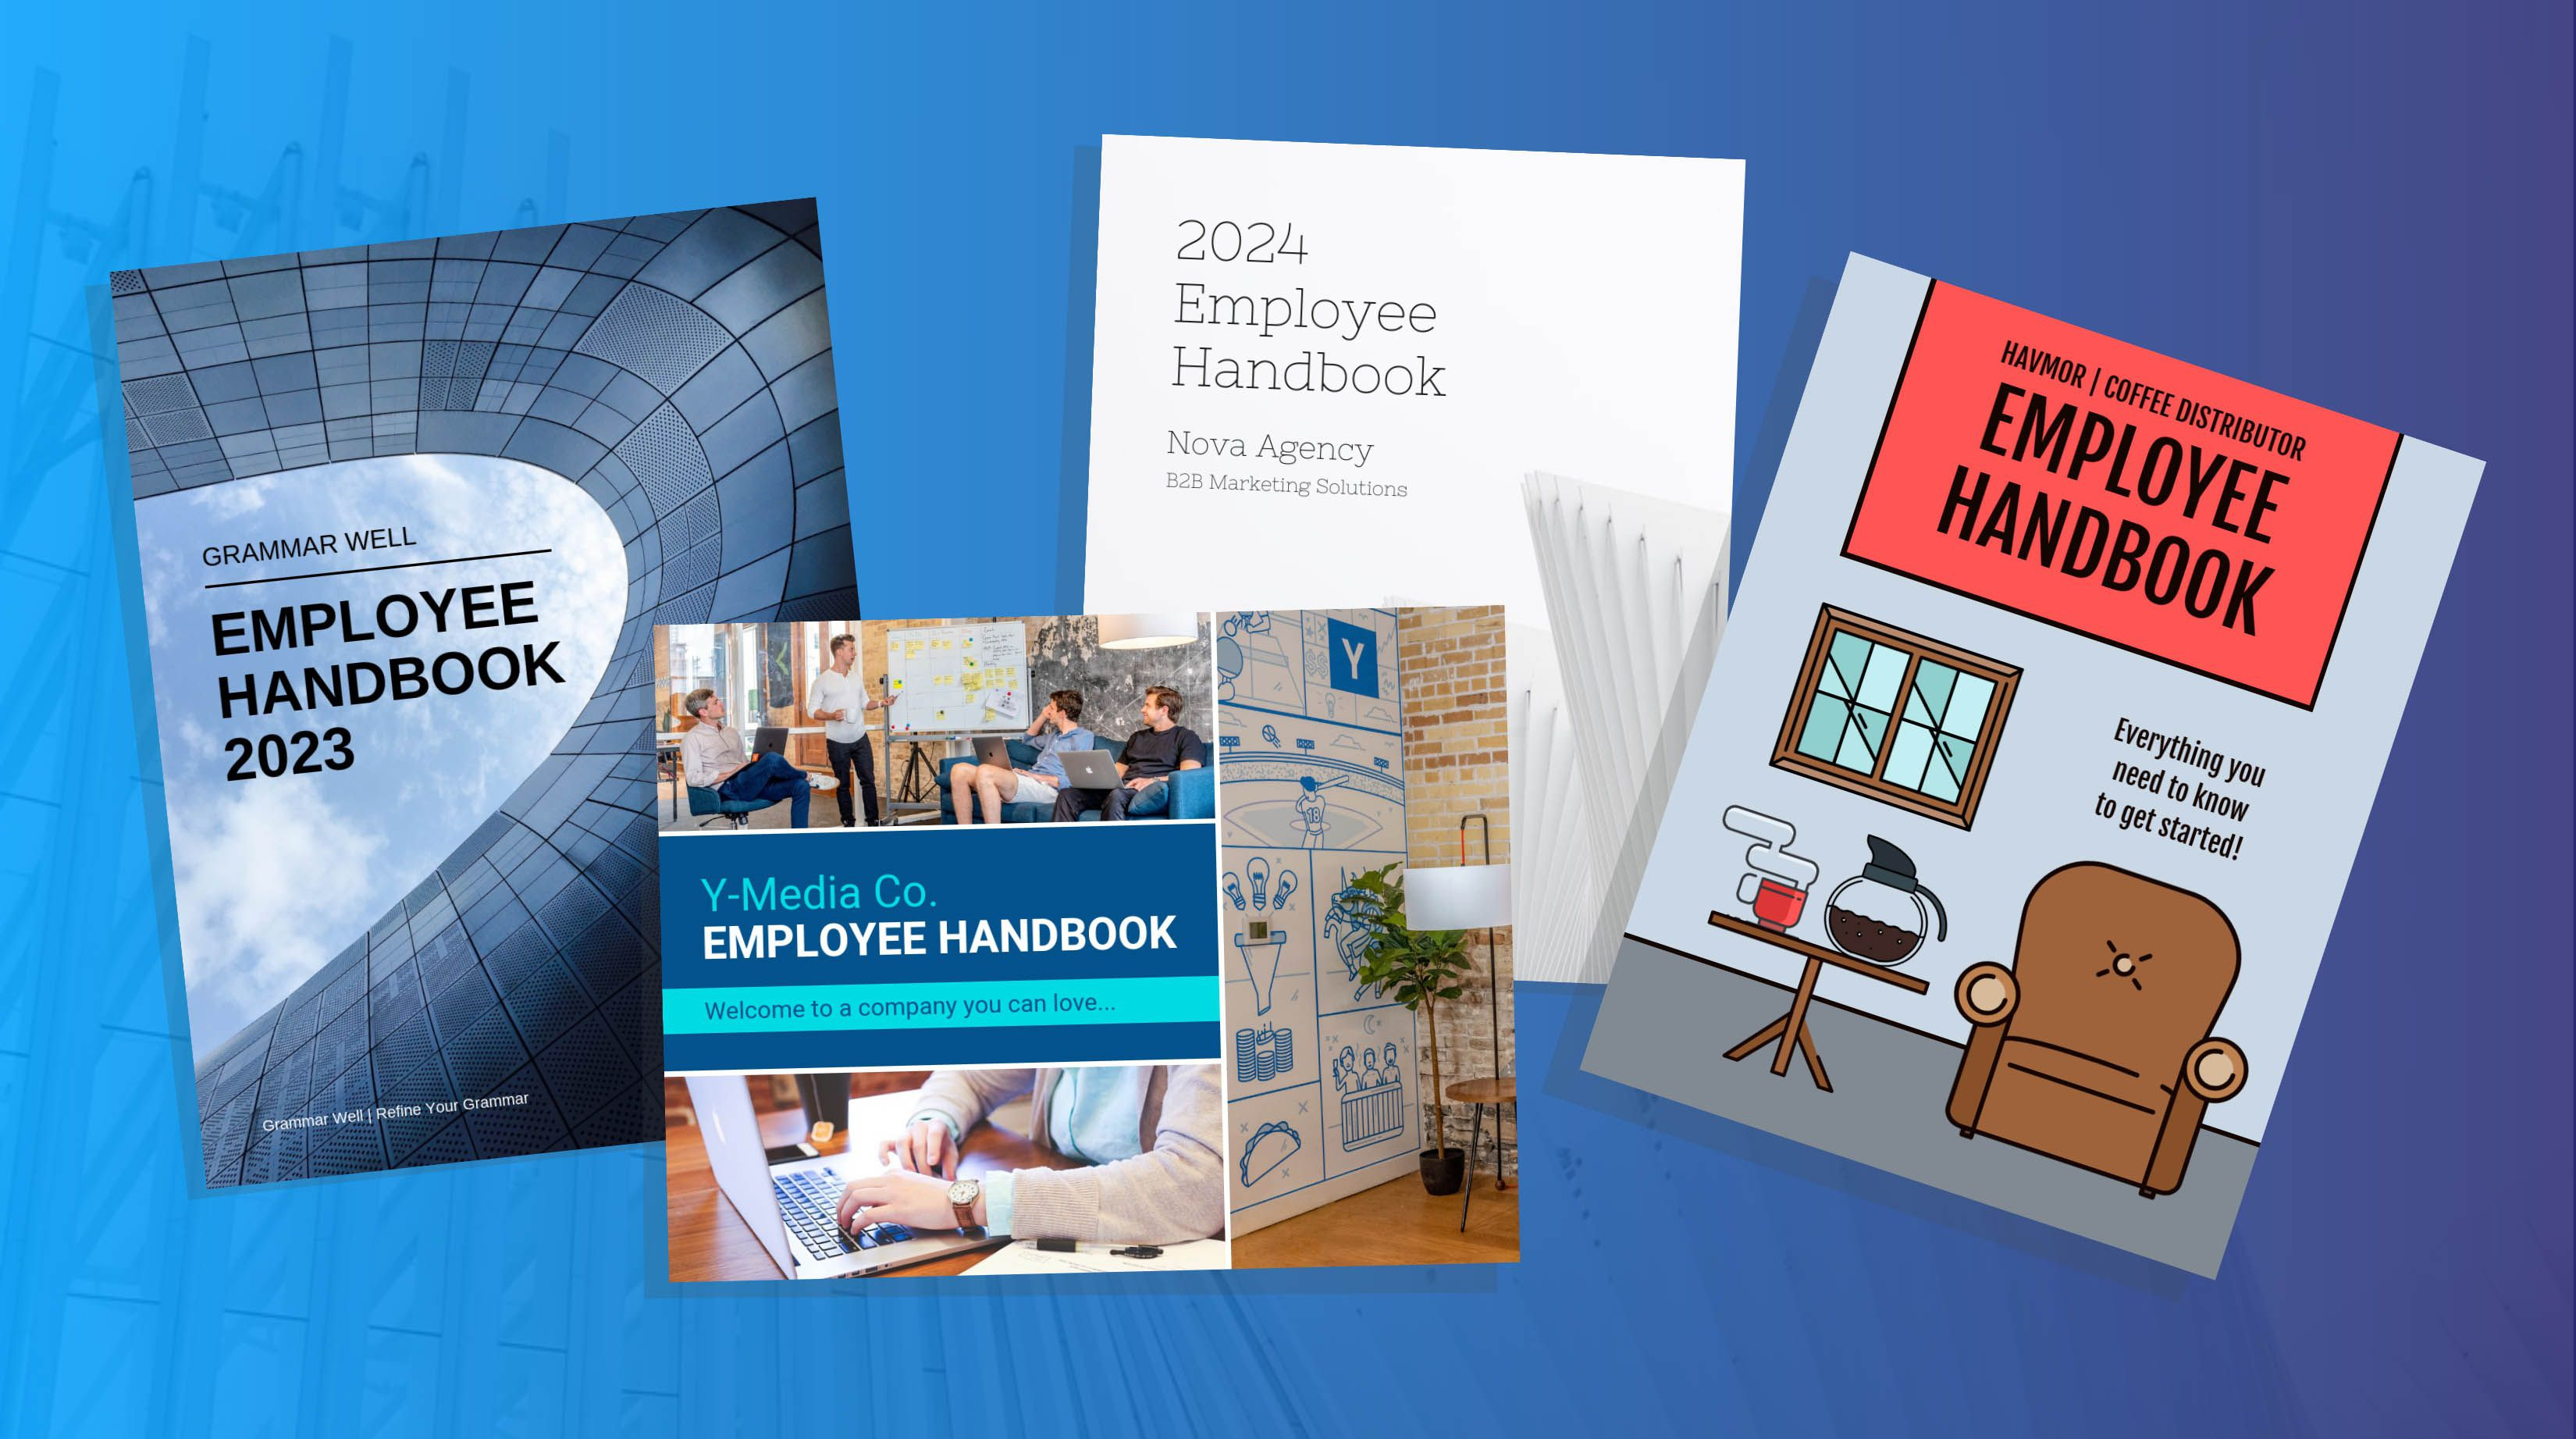 005 Phenomenal Free Employee Handbook Template Inspiration  Templates Sample Canada Philippine In SingaporeFull